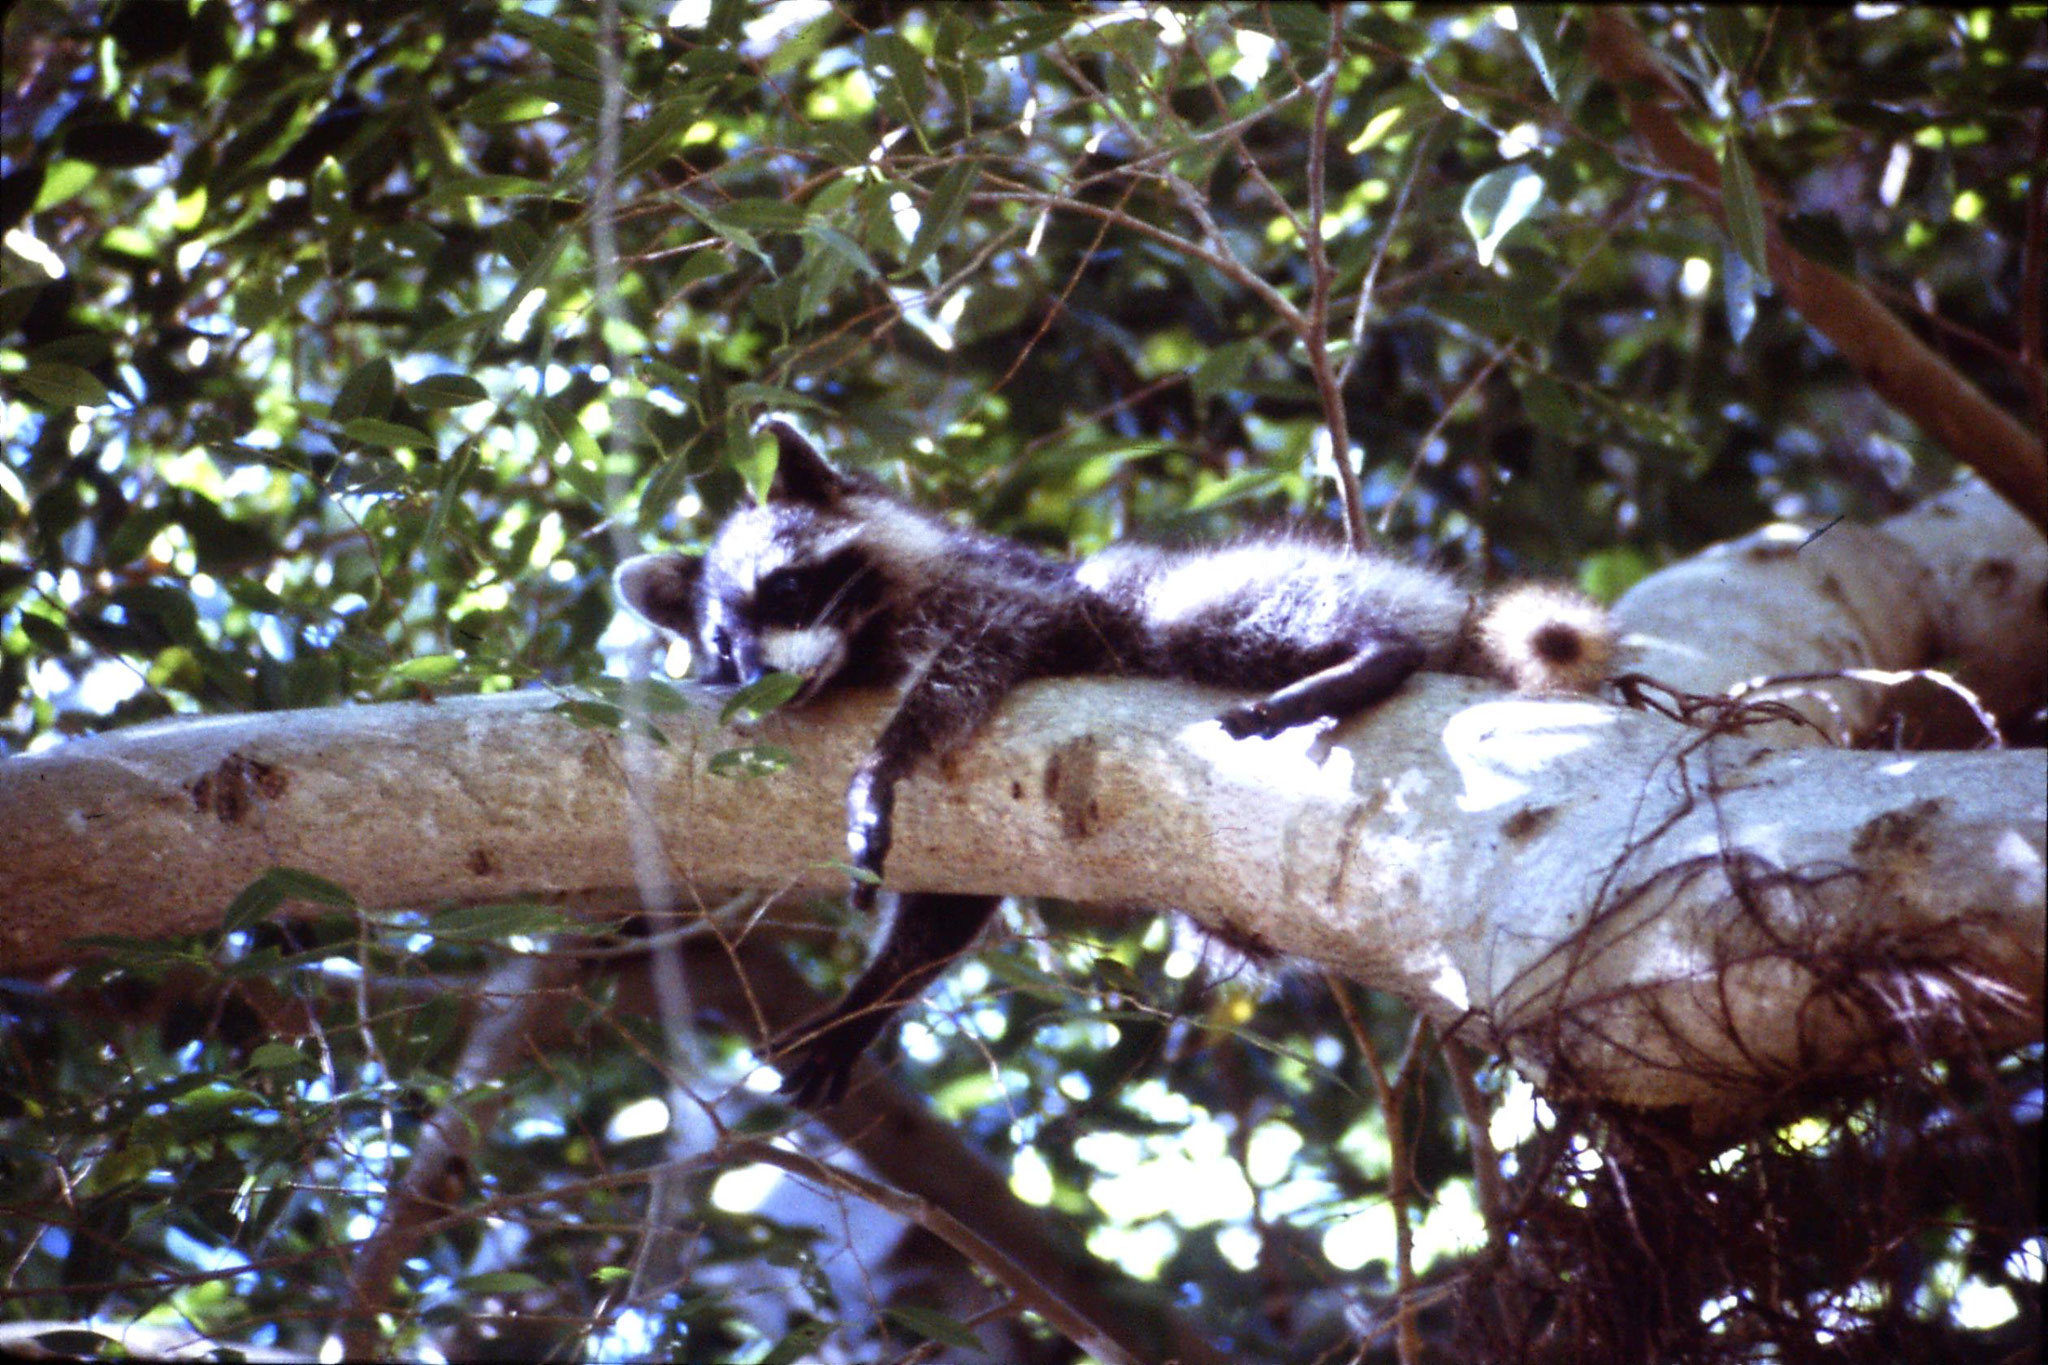 8/3/1991: 4: Key Biscayne raccoon